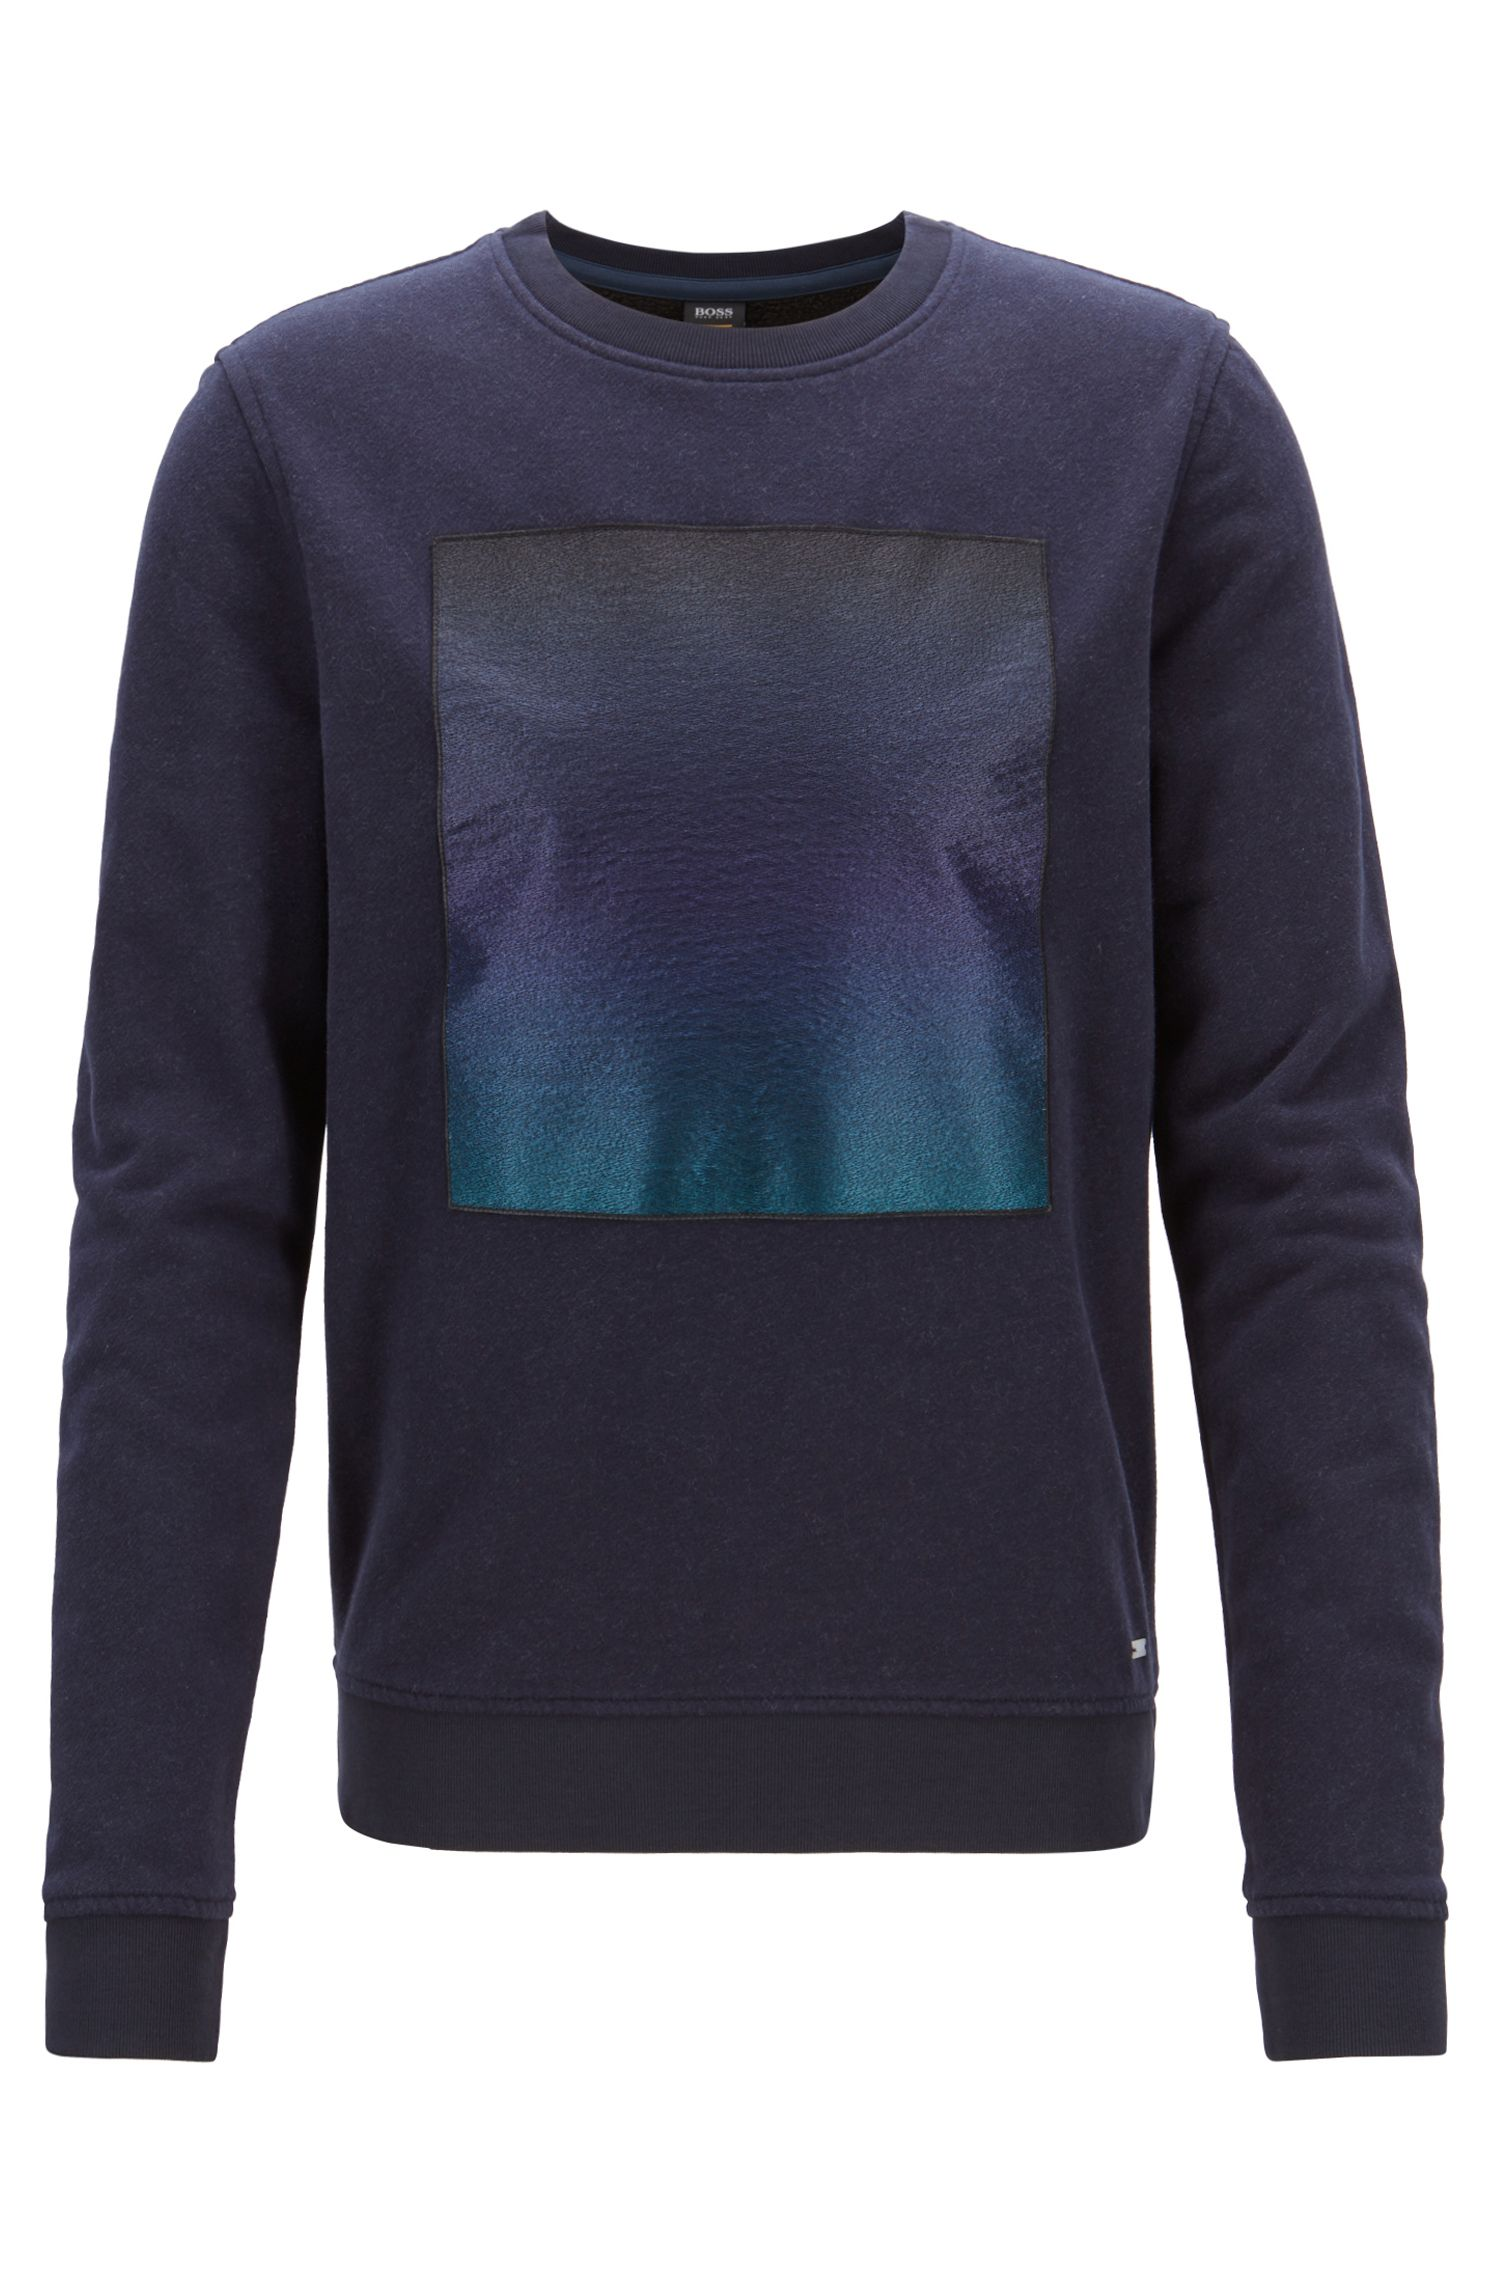 Brushed terry sweatshirt with embroidered patch and degradé print, Dark Blue